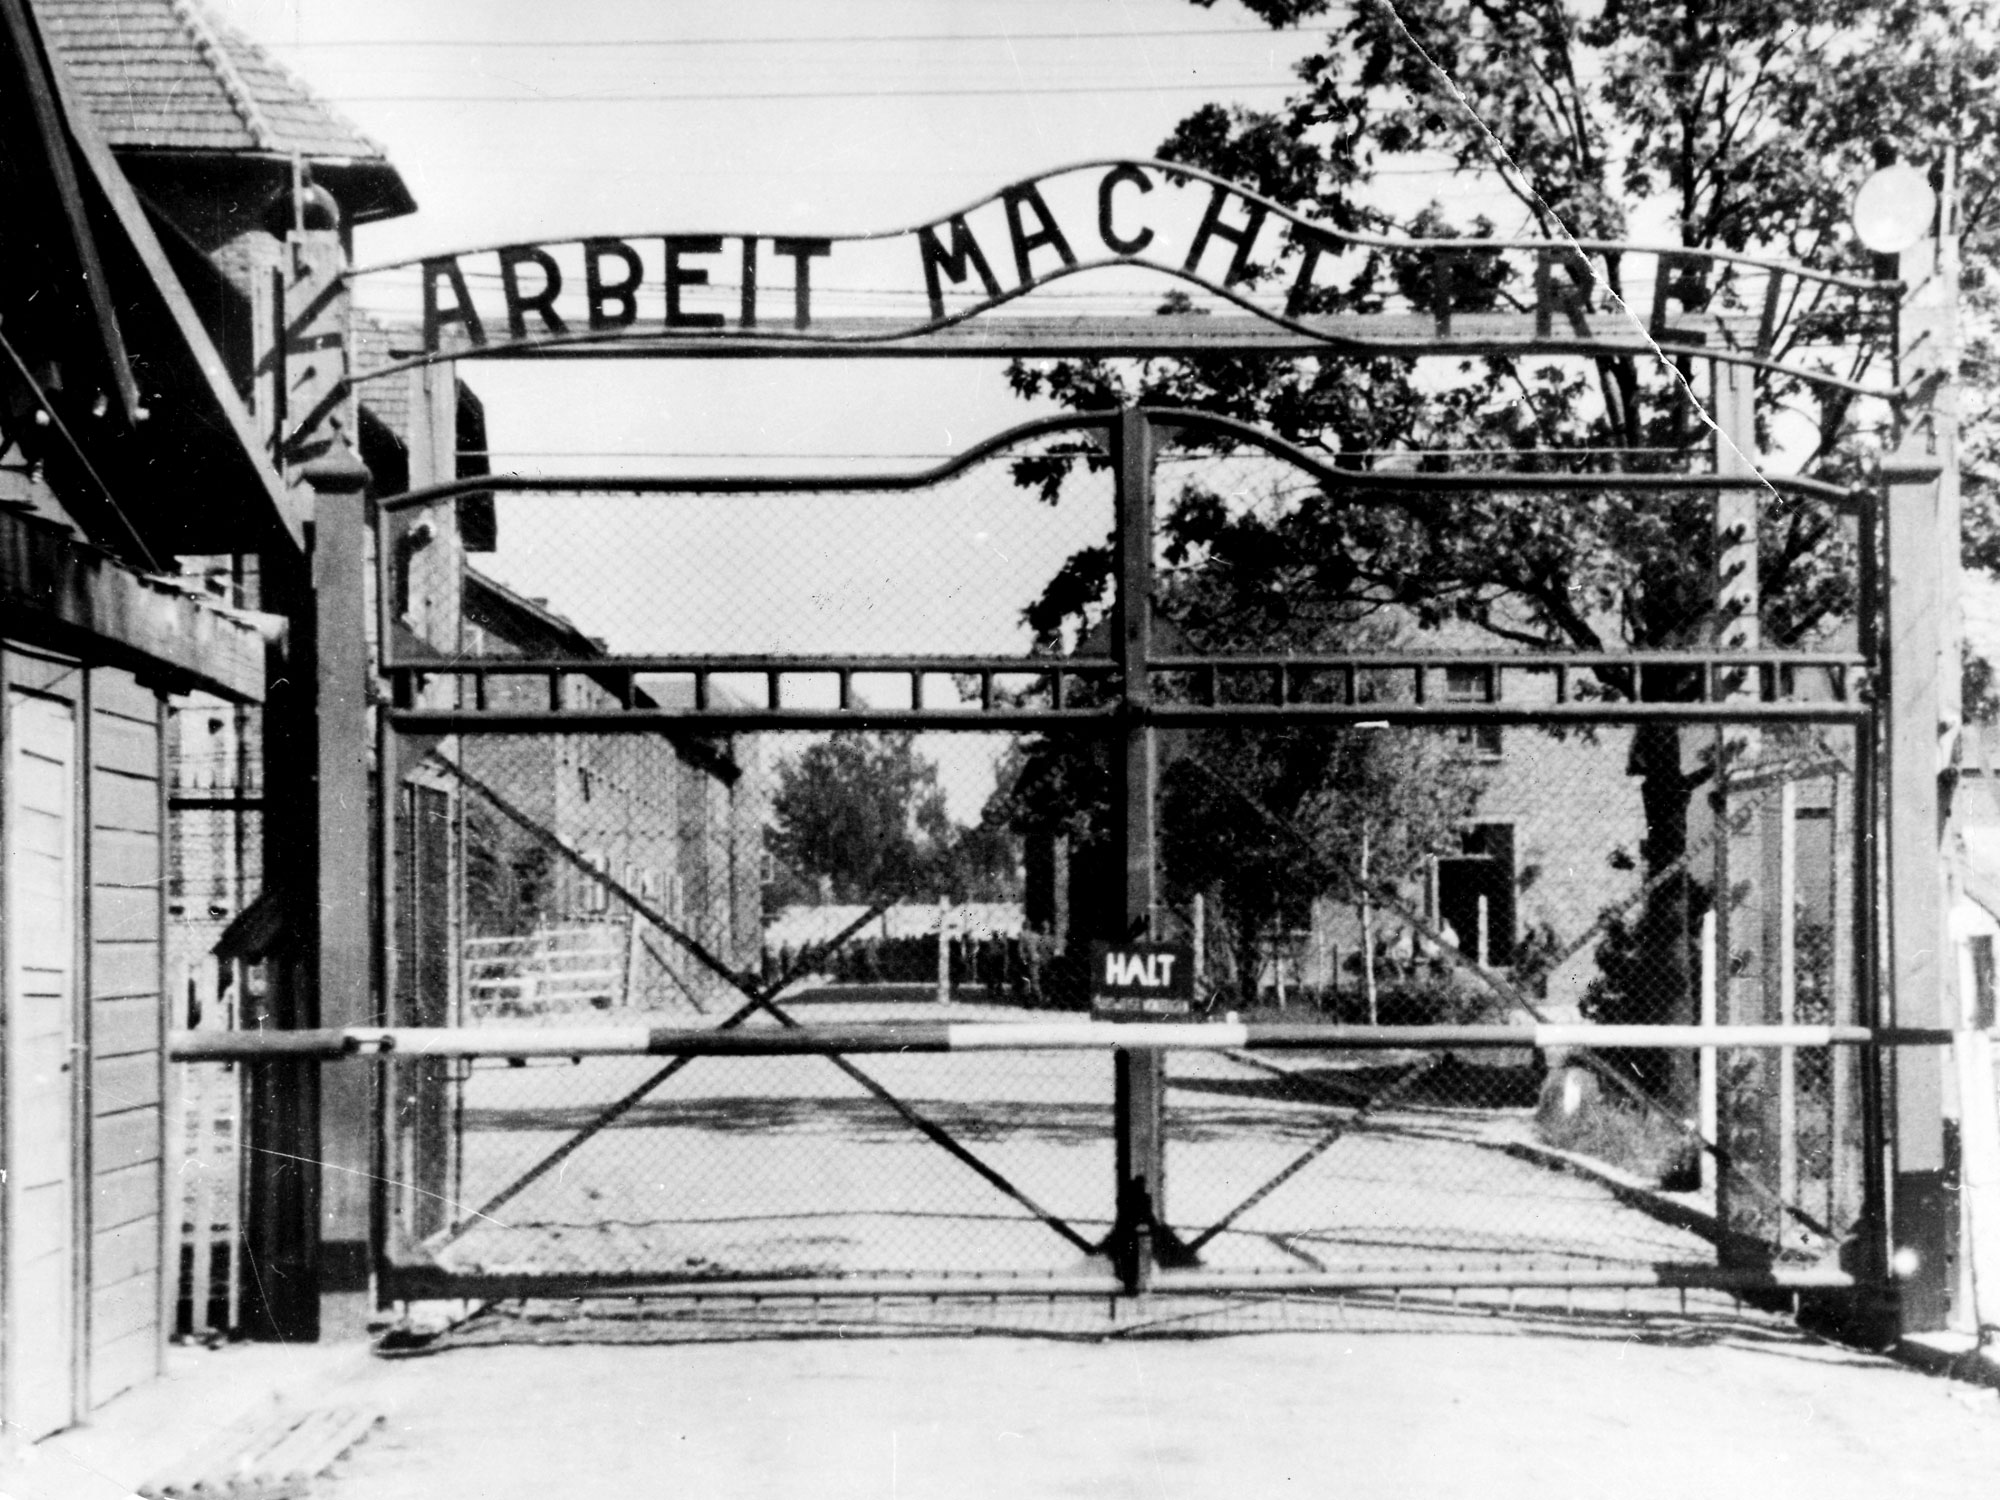 The gate to Auschwitz, a Holocaust concentration camp